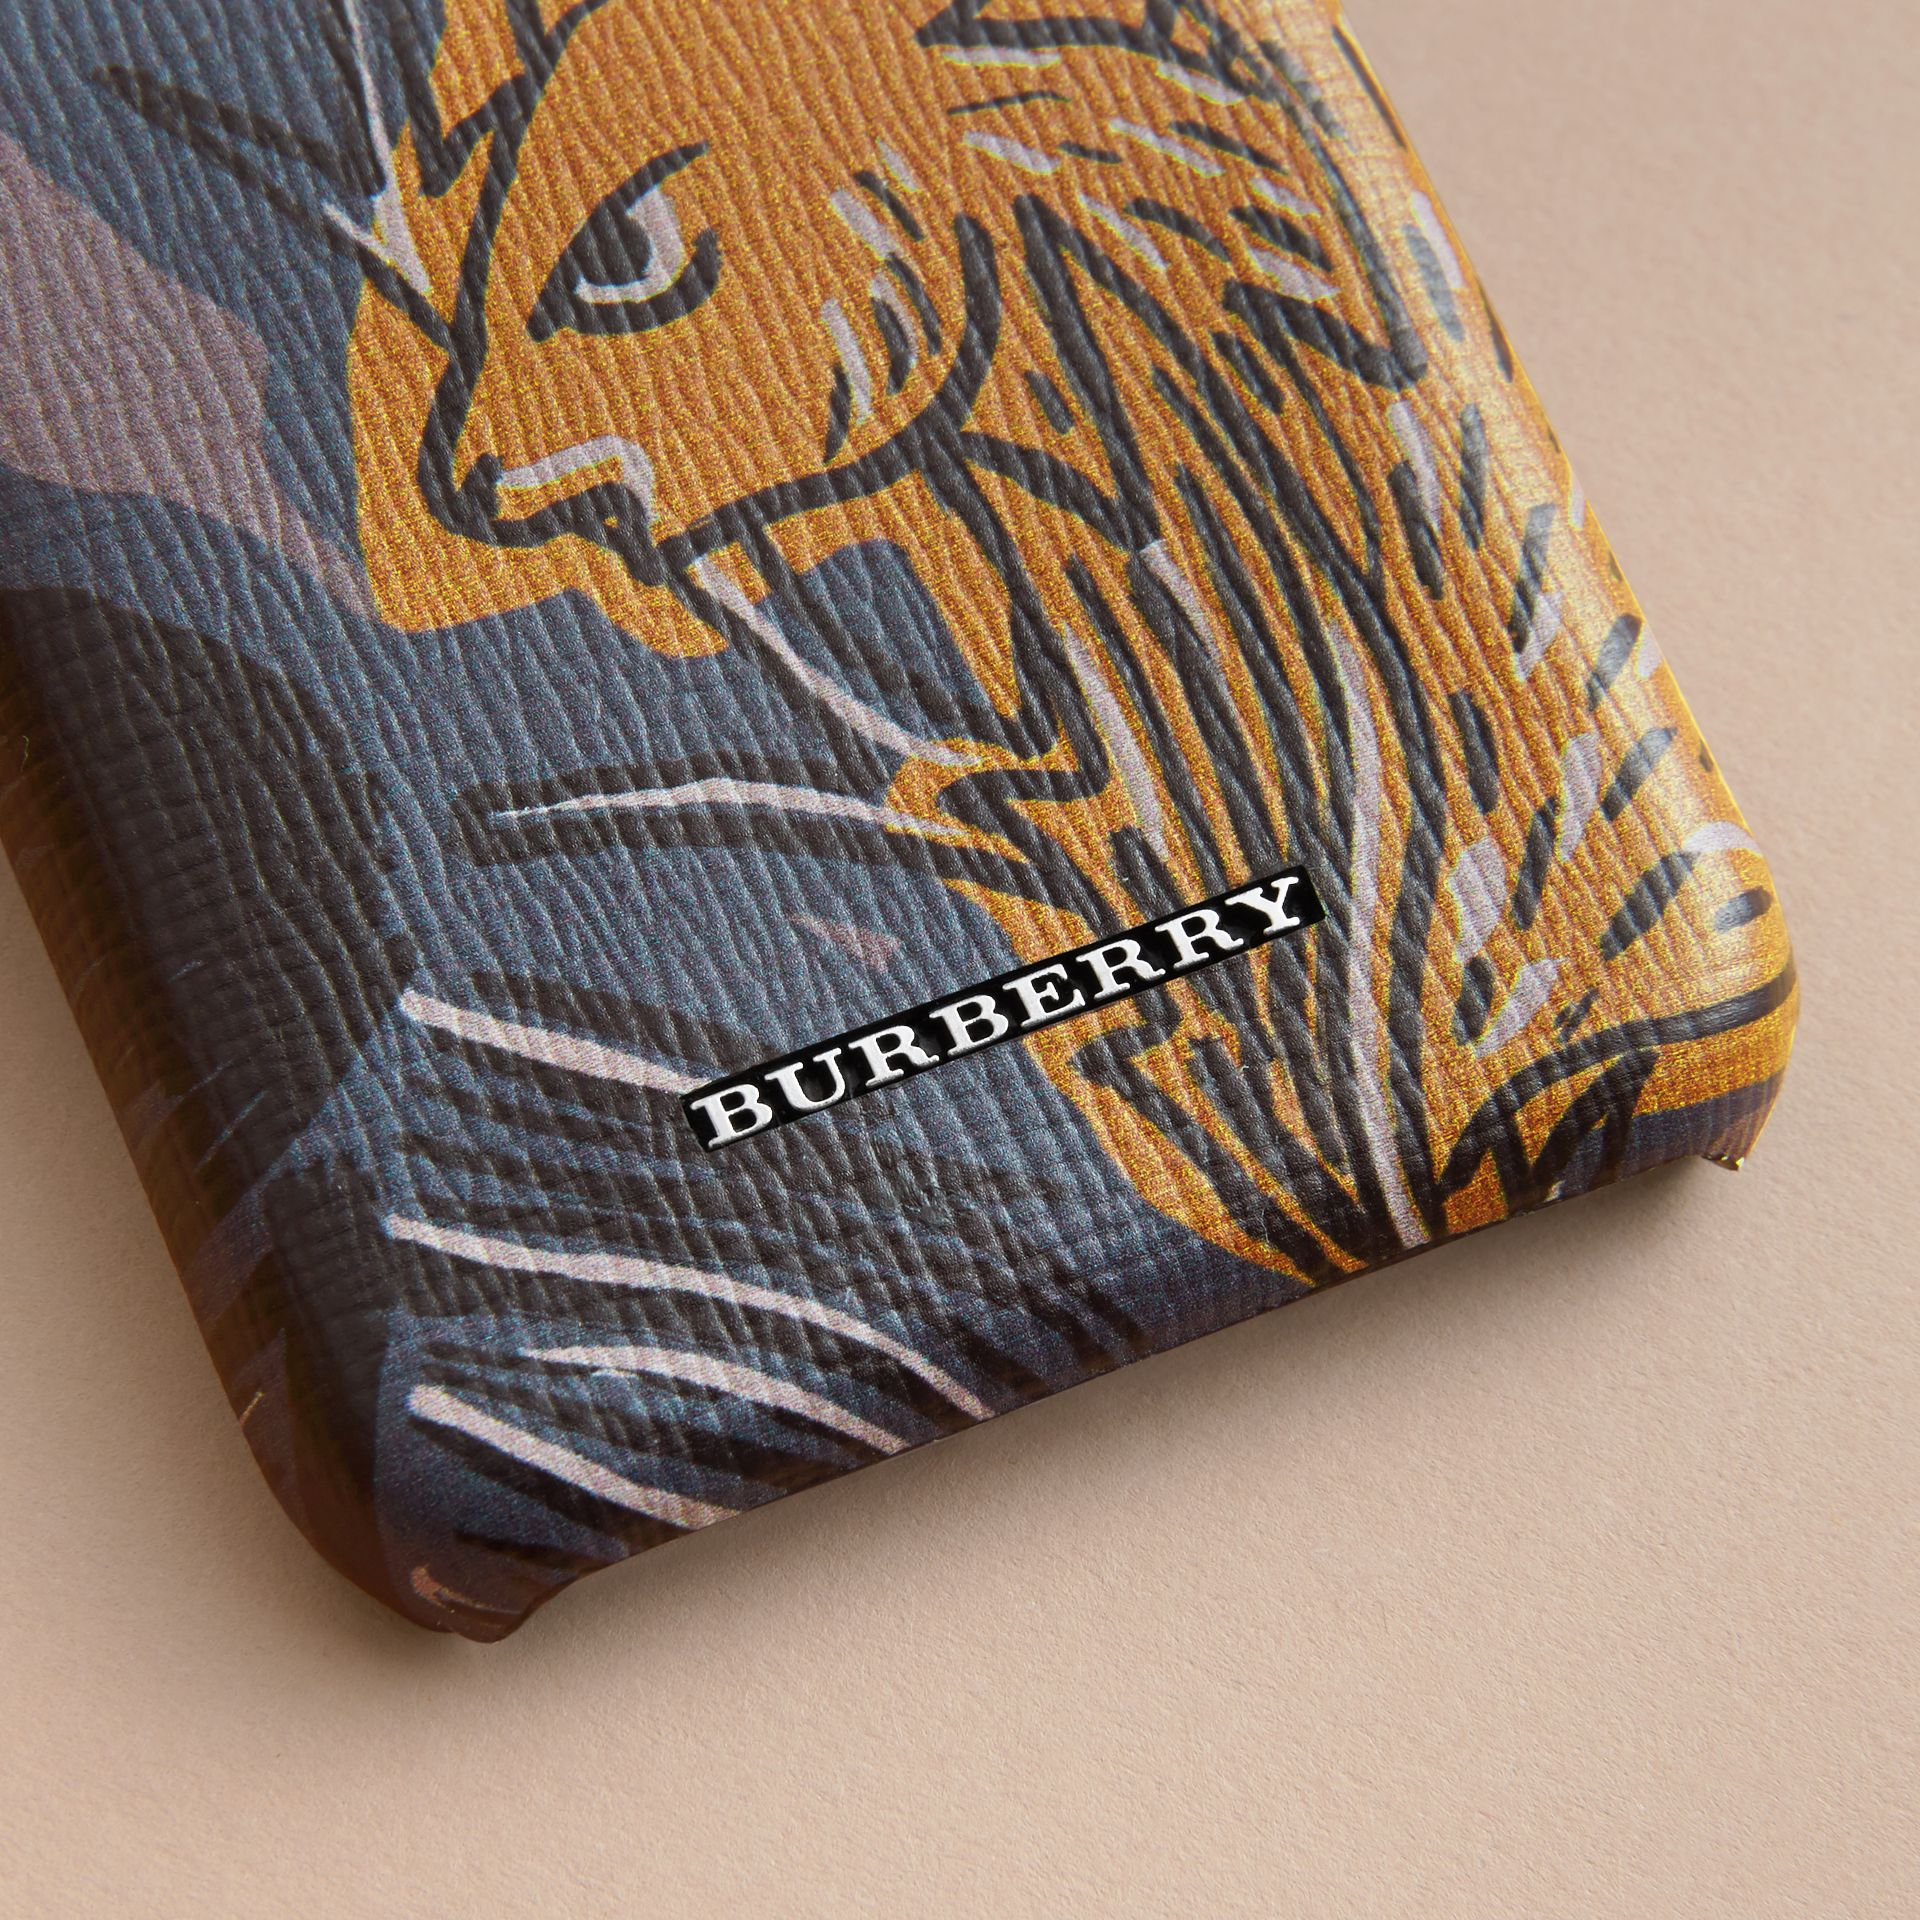 Beasts Print London Leather iPhone 7 Case in Navy Grey - Men | Burberry - gallery image 2